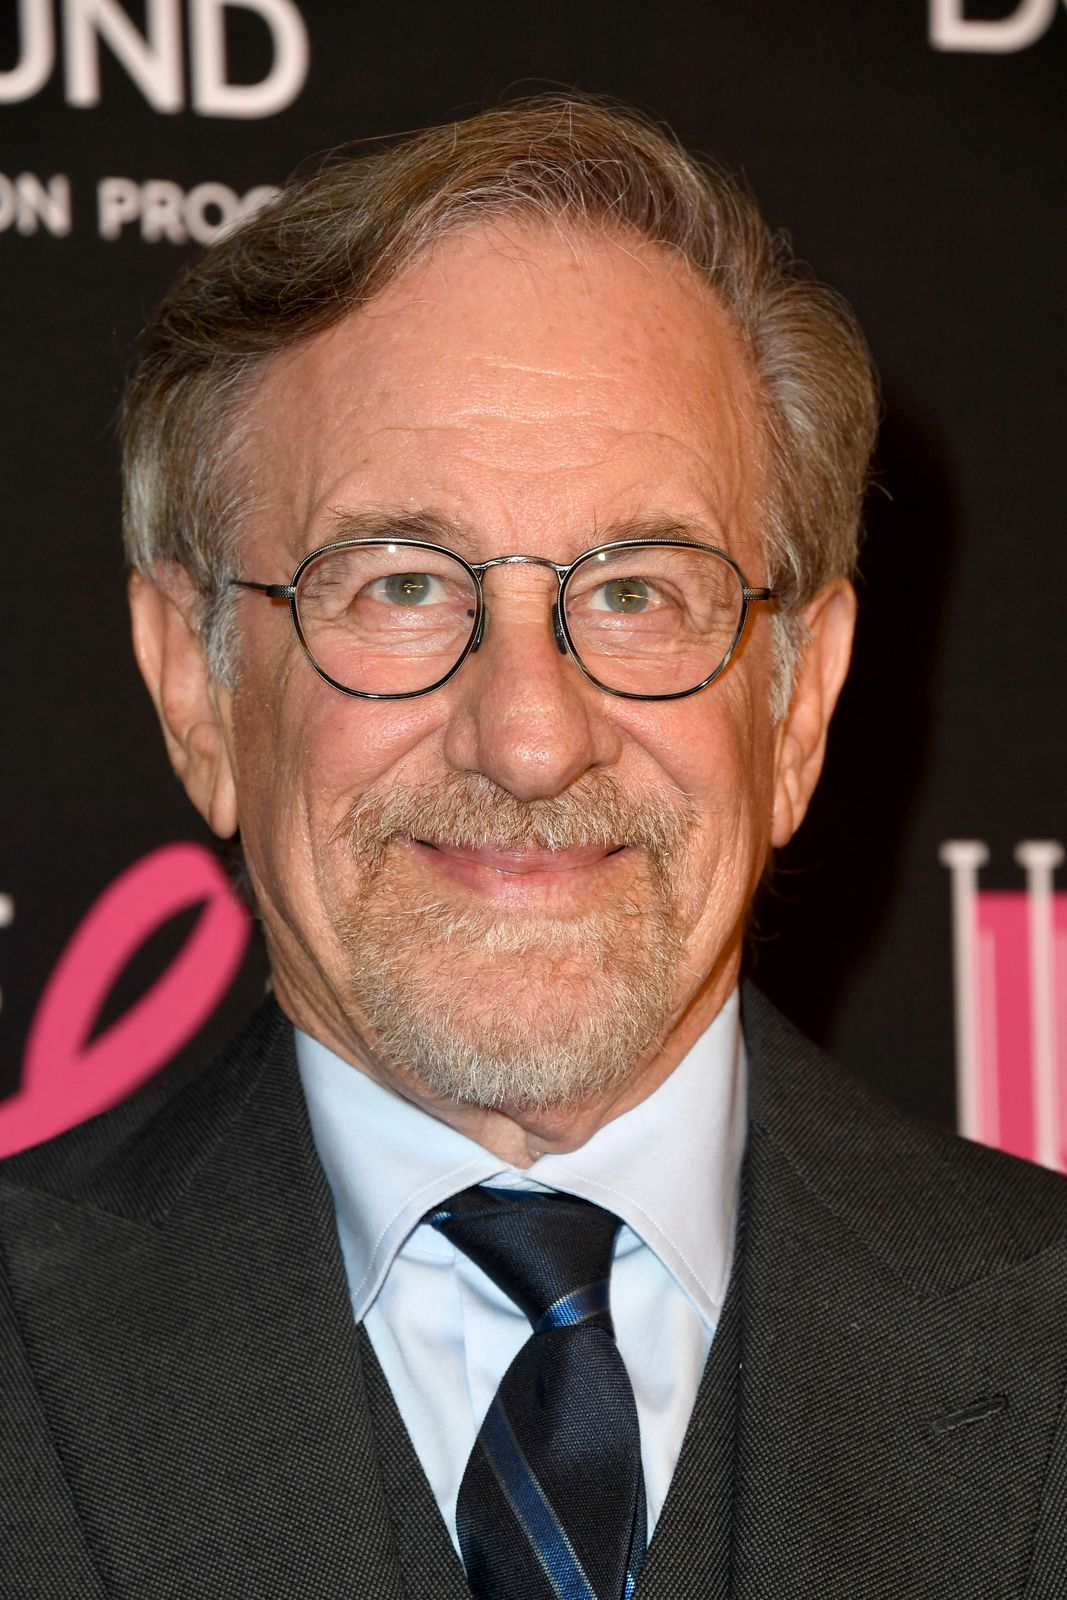 Steven Spielberg at The Women's Cancer Research Fund's An Unforgettable Evening Benefit Gala on February 28, 2019, in Beverly Hills, California   Photo: Frazer Harrison/Getty Images